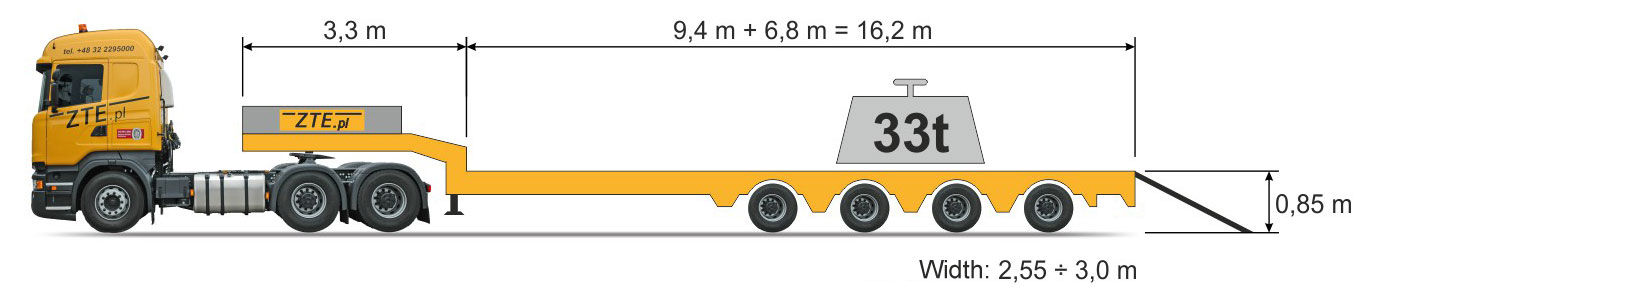 4-axle Semi semi-trailer